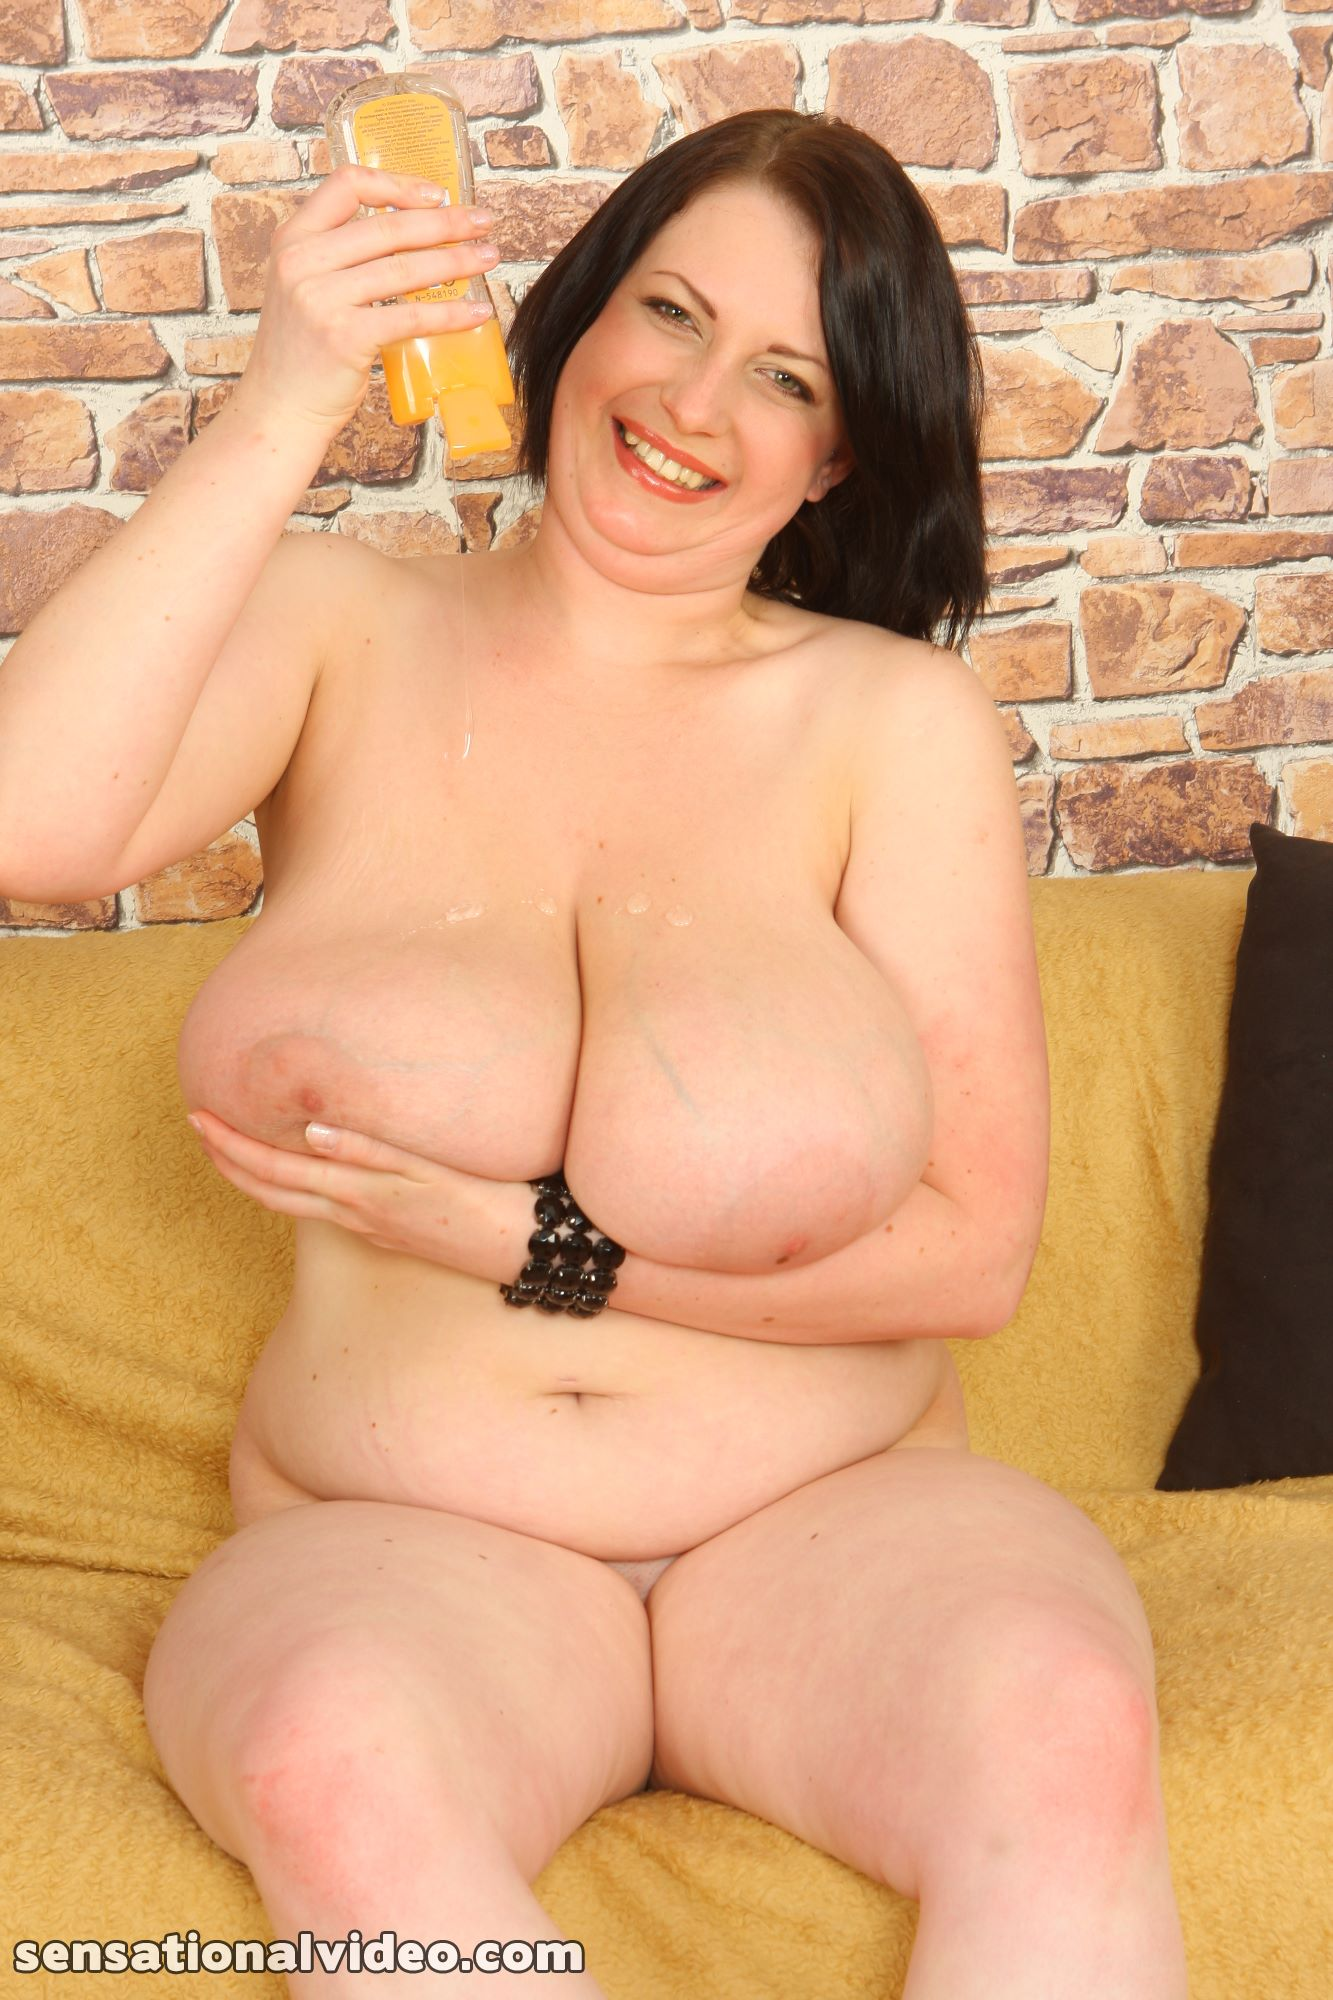 lesgalls spicytitties plumperpass gal535 pic 21